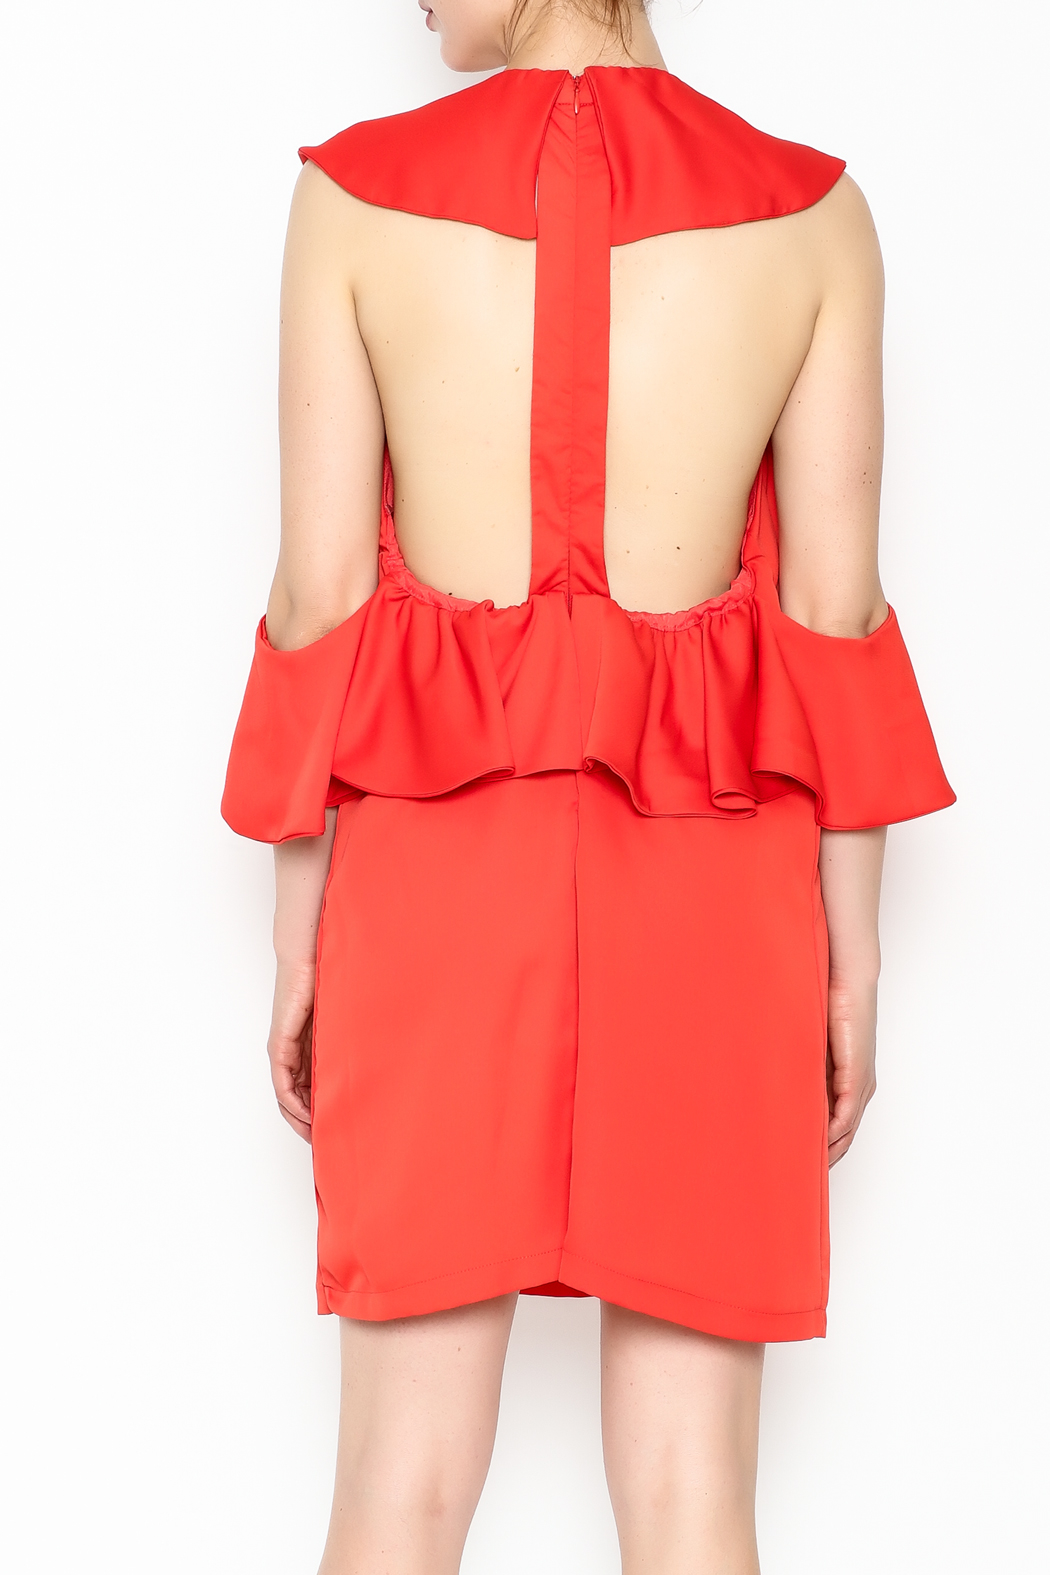 Do & Be Sexy Ruffle Dress - Back Cropped Image